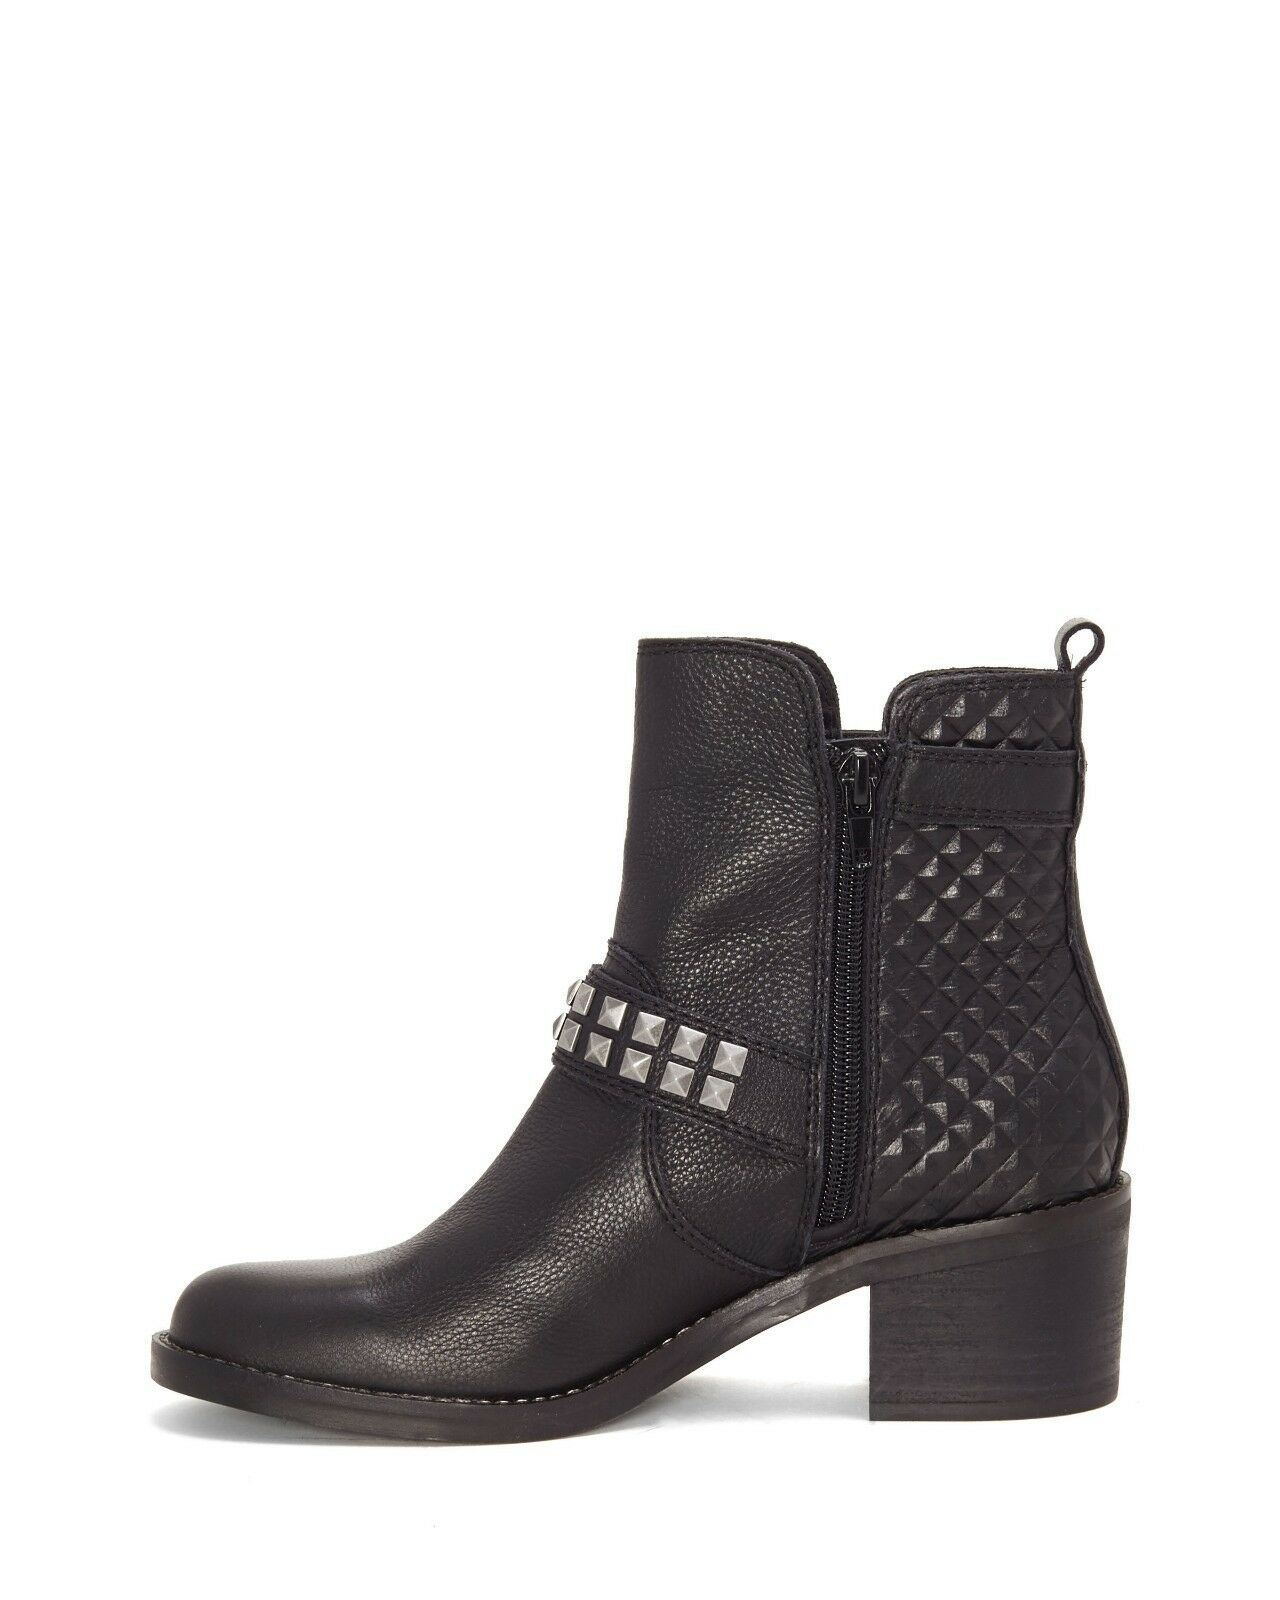 Lucky Brand Women's Size 6.5M Cantini2 Pyramid Stud Booties Booties Booties Black Leather New 4b1ad3